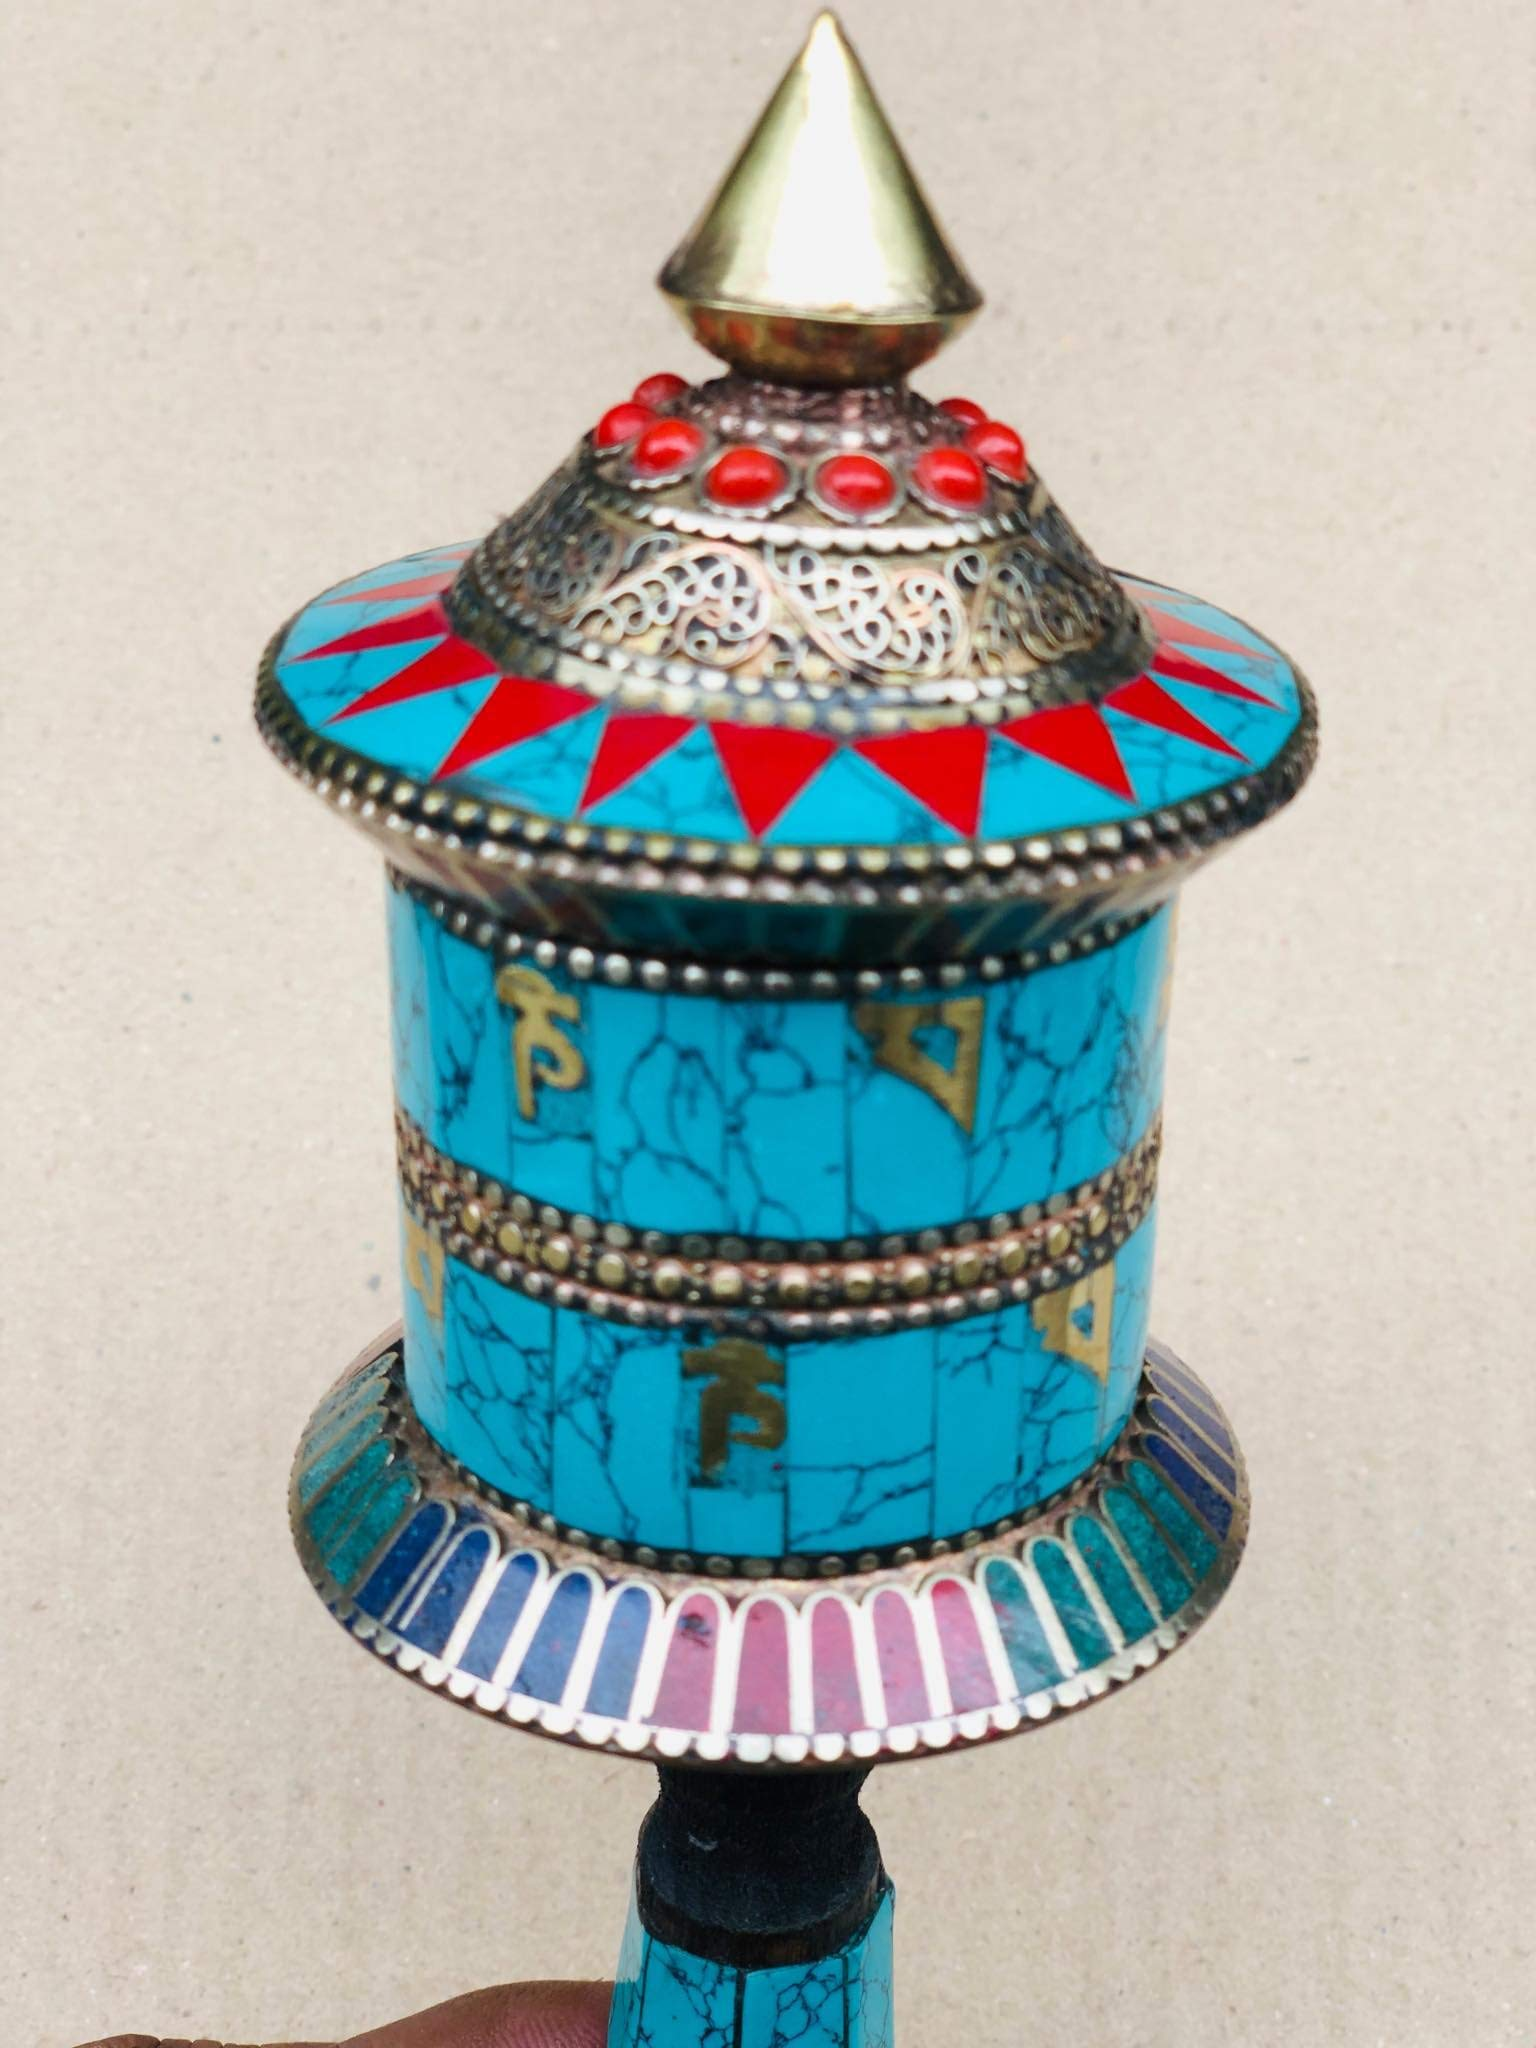 Buddhist Brass & Stone Set Hand-held Prayer Wheel - 9 Inch with Authentic Wooden Handle by Singing Bowl Nepal (Image #7)